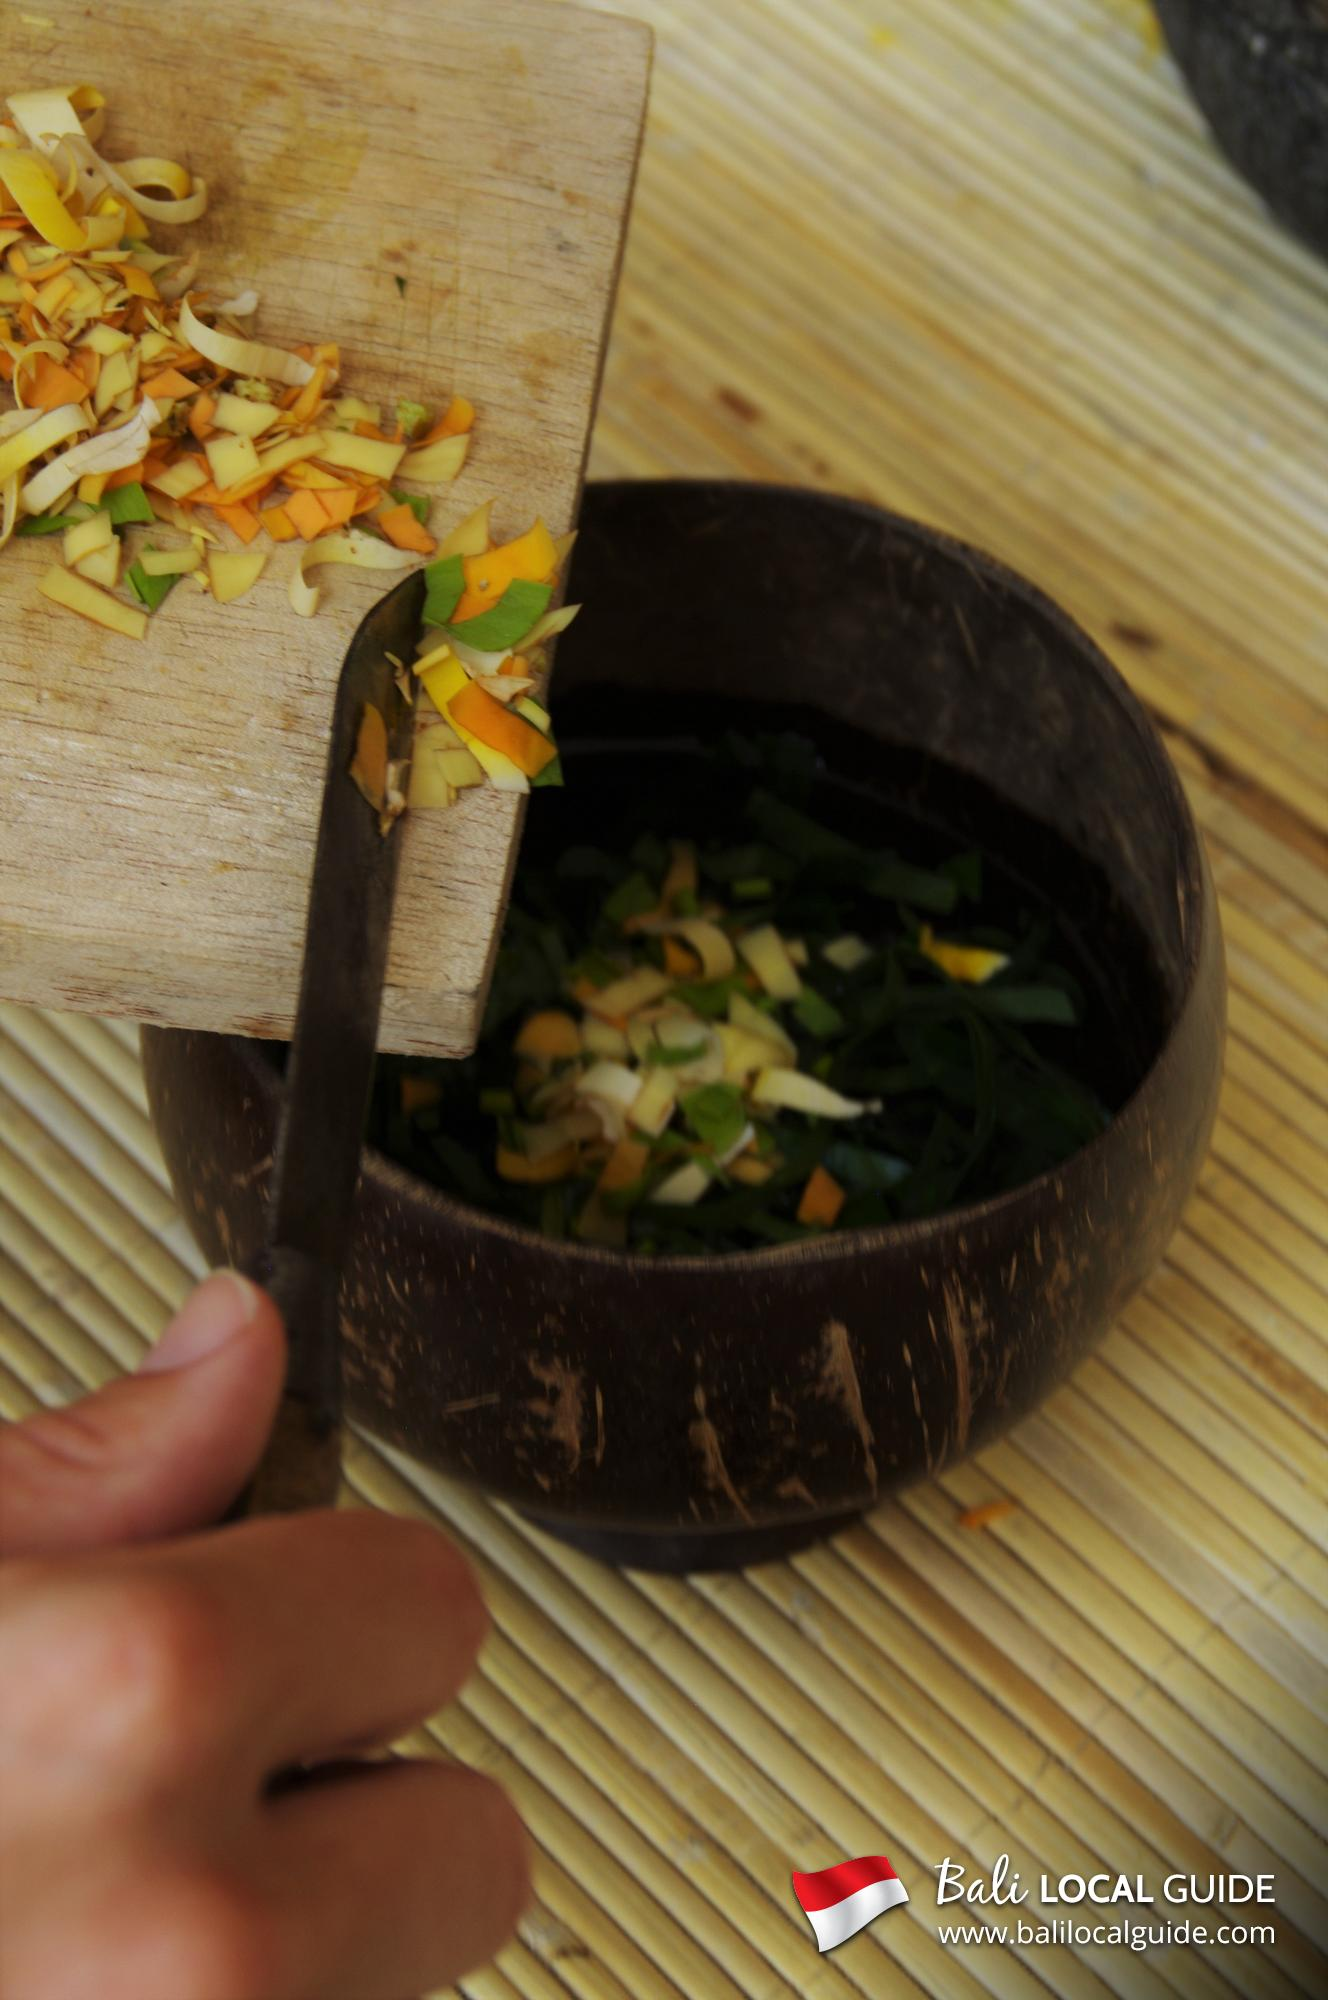 Walk and Make Organic Beauty Products (Center of Bali) | Bali Local